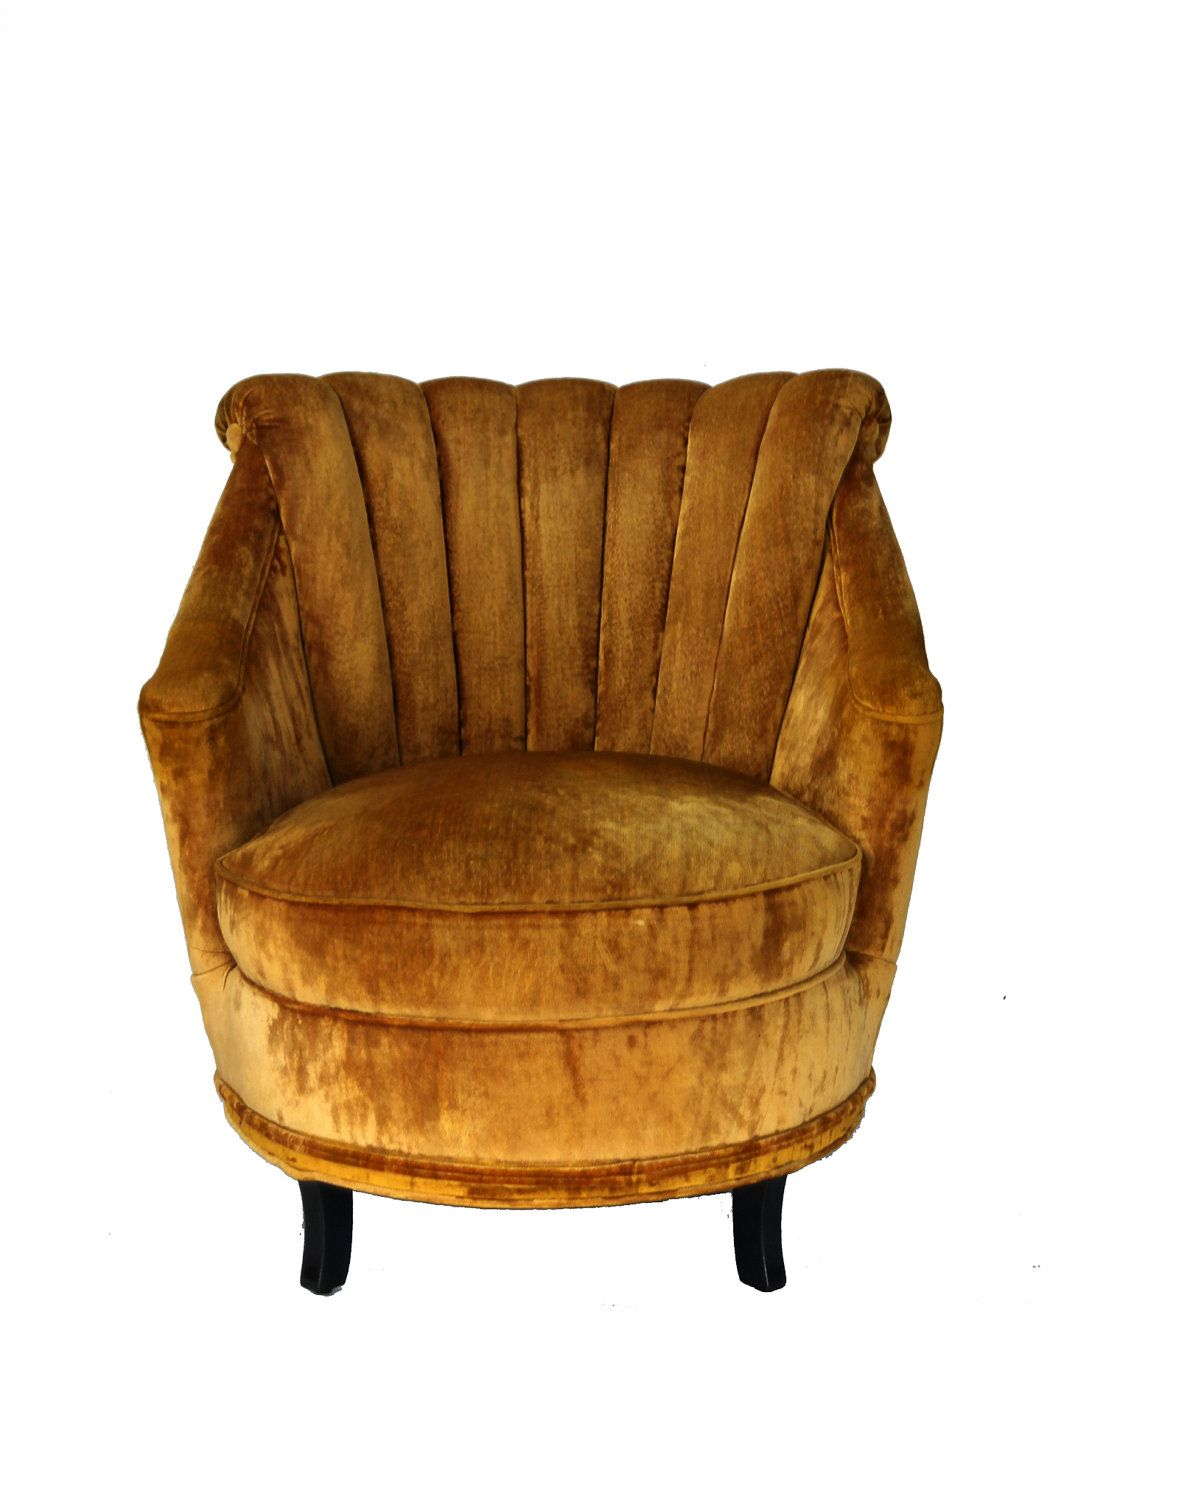 Genial Little Gold Velvet Chair.